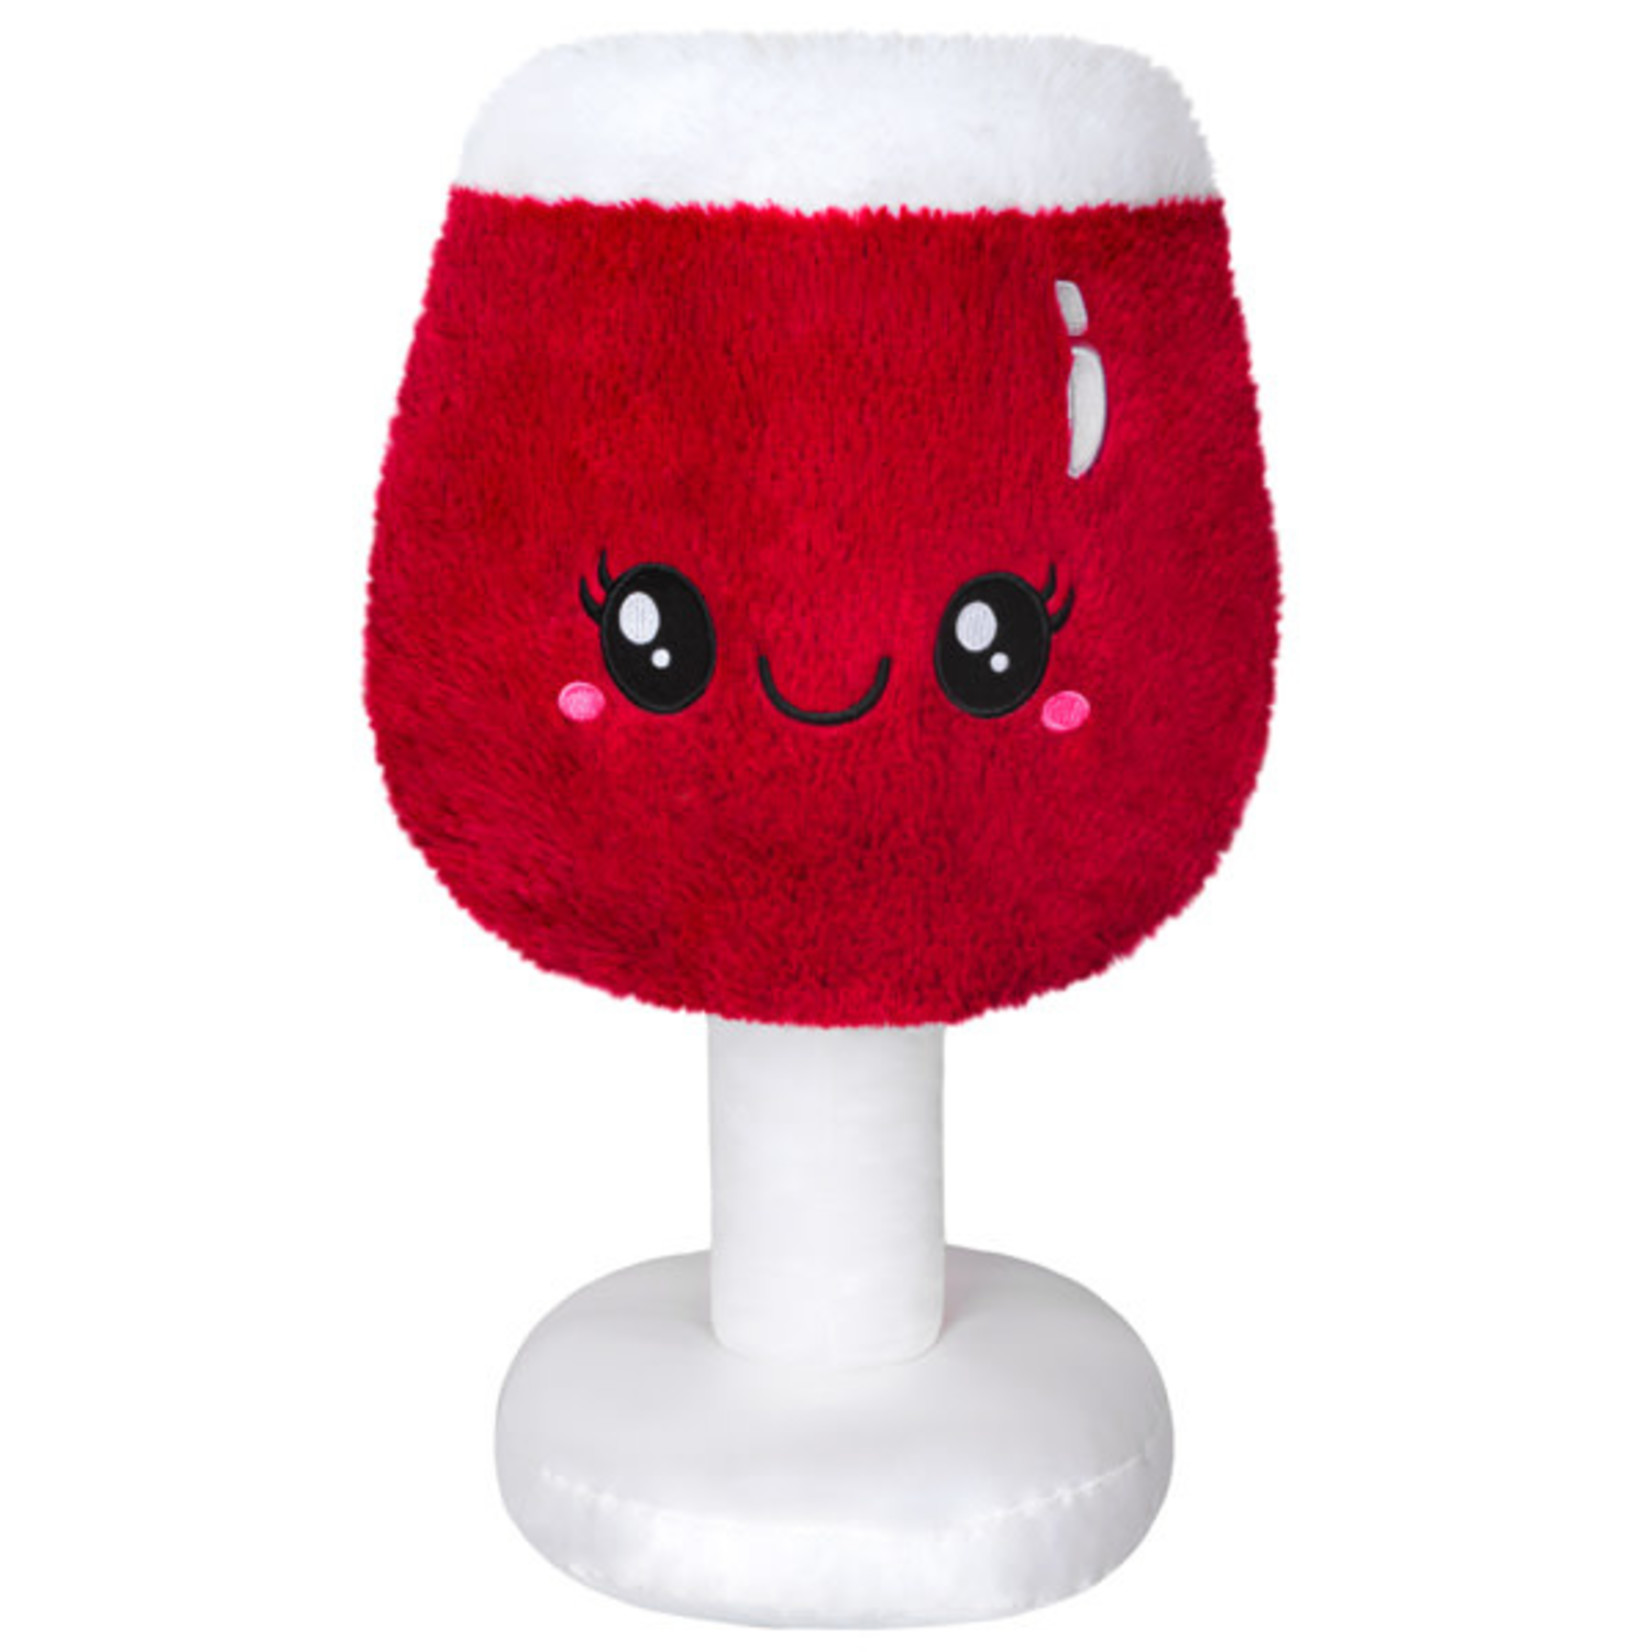 Squishable Red Wine Glass